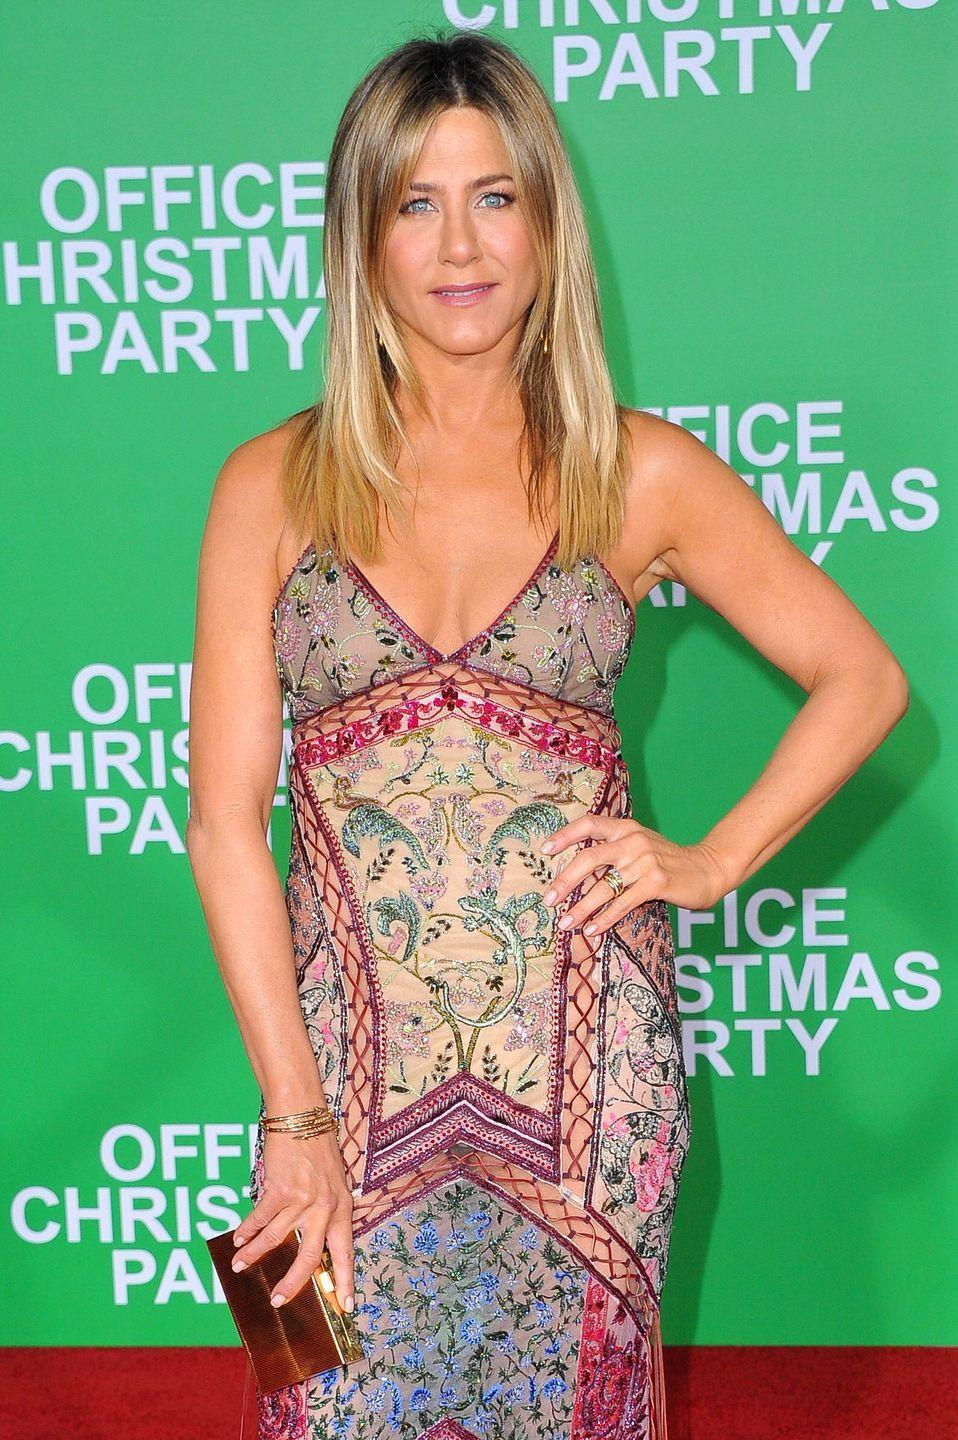 "<p>Jennifer told <em><a href=""https://www.womenshealthmag.com/life/a19937094/jennifer-aniston-beauty-products/"" rel=""nofollow noopener"" target=""_blank"" data-ylk=""slk:Women's Health"" class=""link rapid-noclick-resp"">Women's Health</a></em> that she loves to nosh on frozen grapes. ""I like the red ones—they're really easy and delicious,"" she said. ""They give you that frozen crunch. I was at a spa one time, and they gave me a little cup of frozen grapes after my mud bath soak or whatever. It was sort of like, 'This is genius.'""</p>"